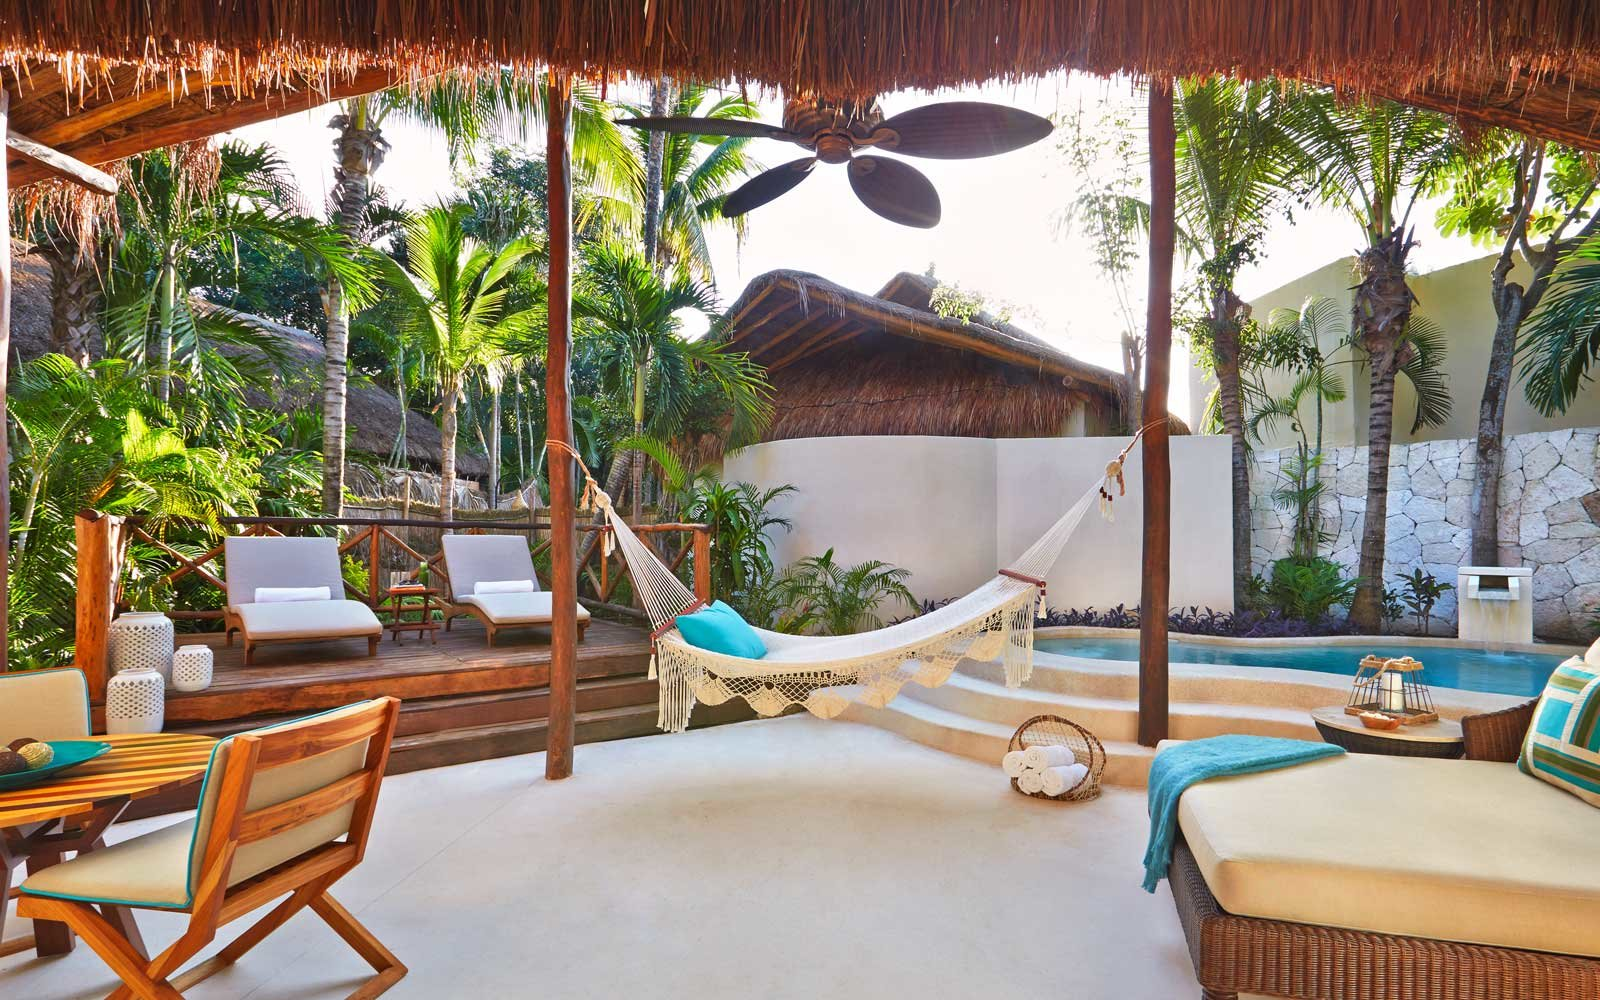 The 2017 World's Best Resorts In Mexico